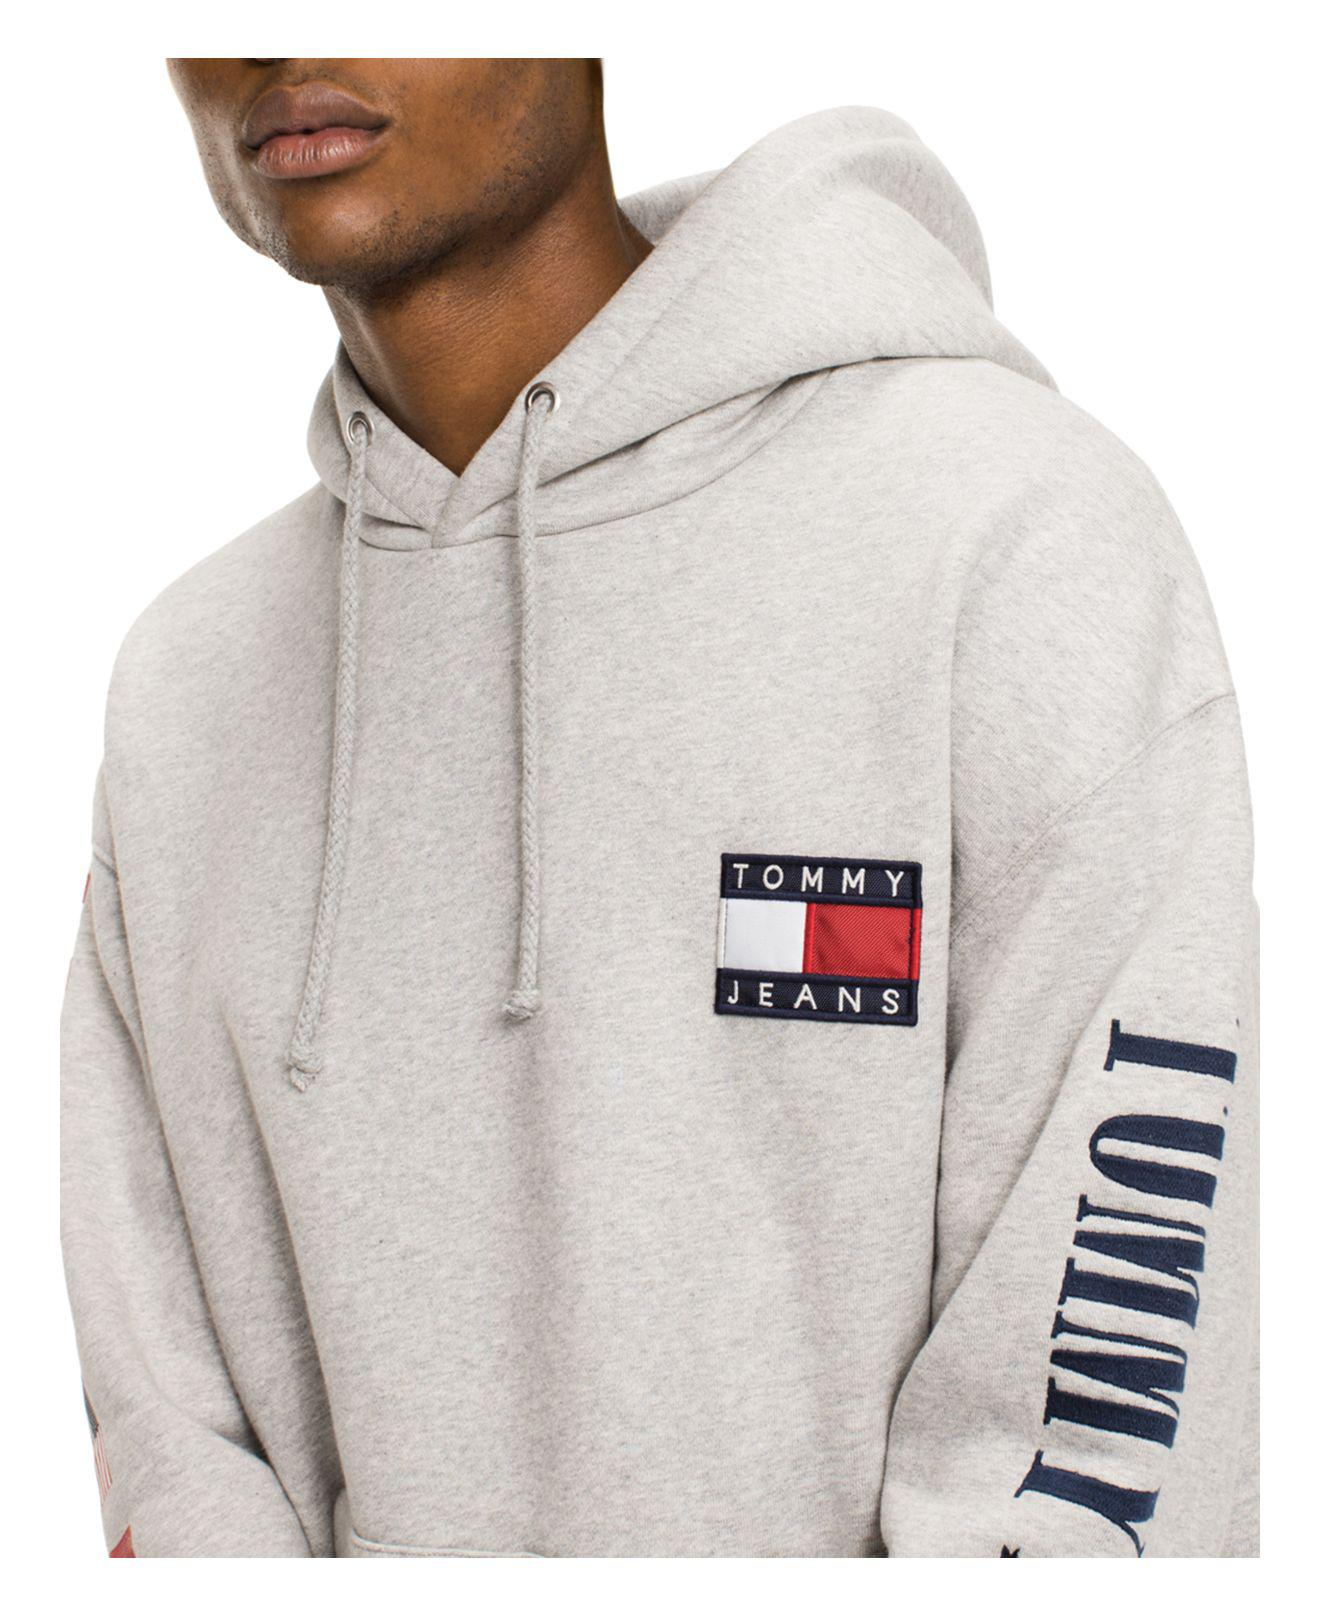 ab3d50e1c Tommy Hilfiger Tommy Jeans 90's Logo Hooded Sweatshirt in Gray for ...